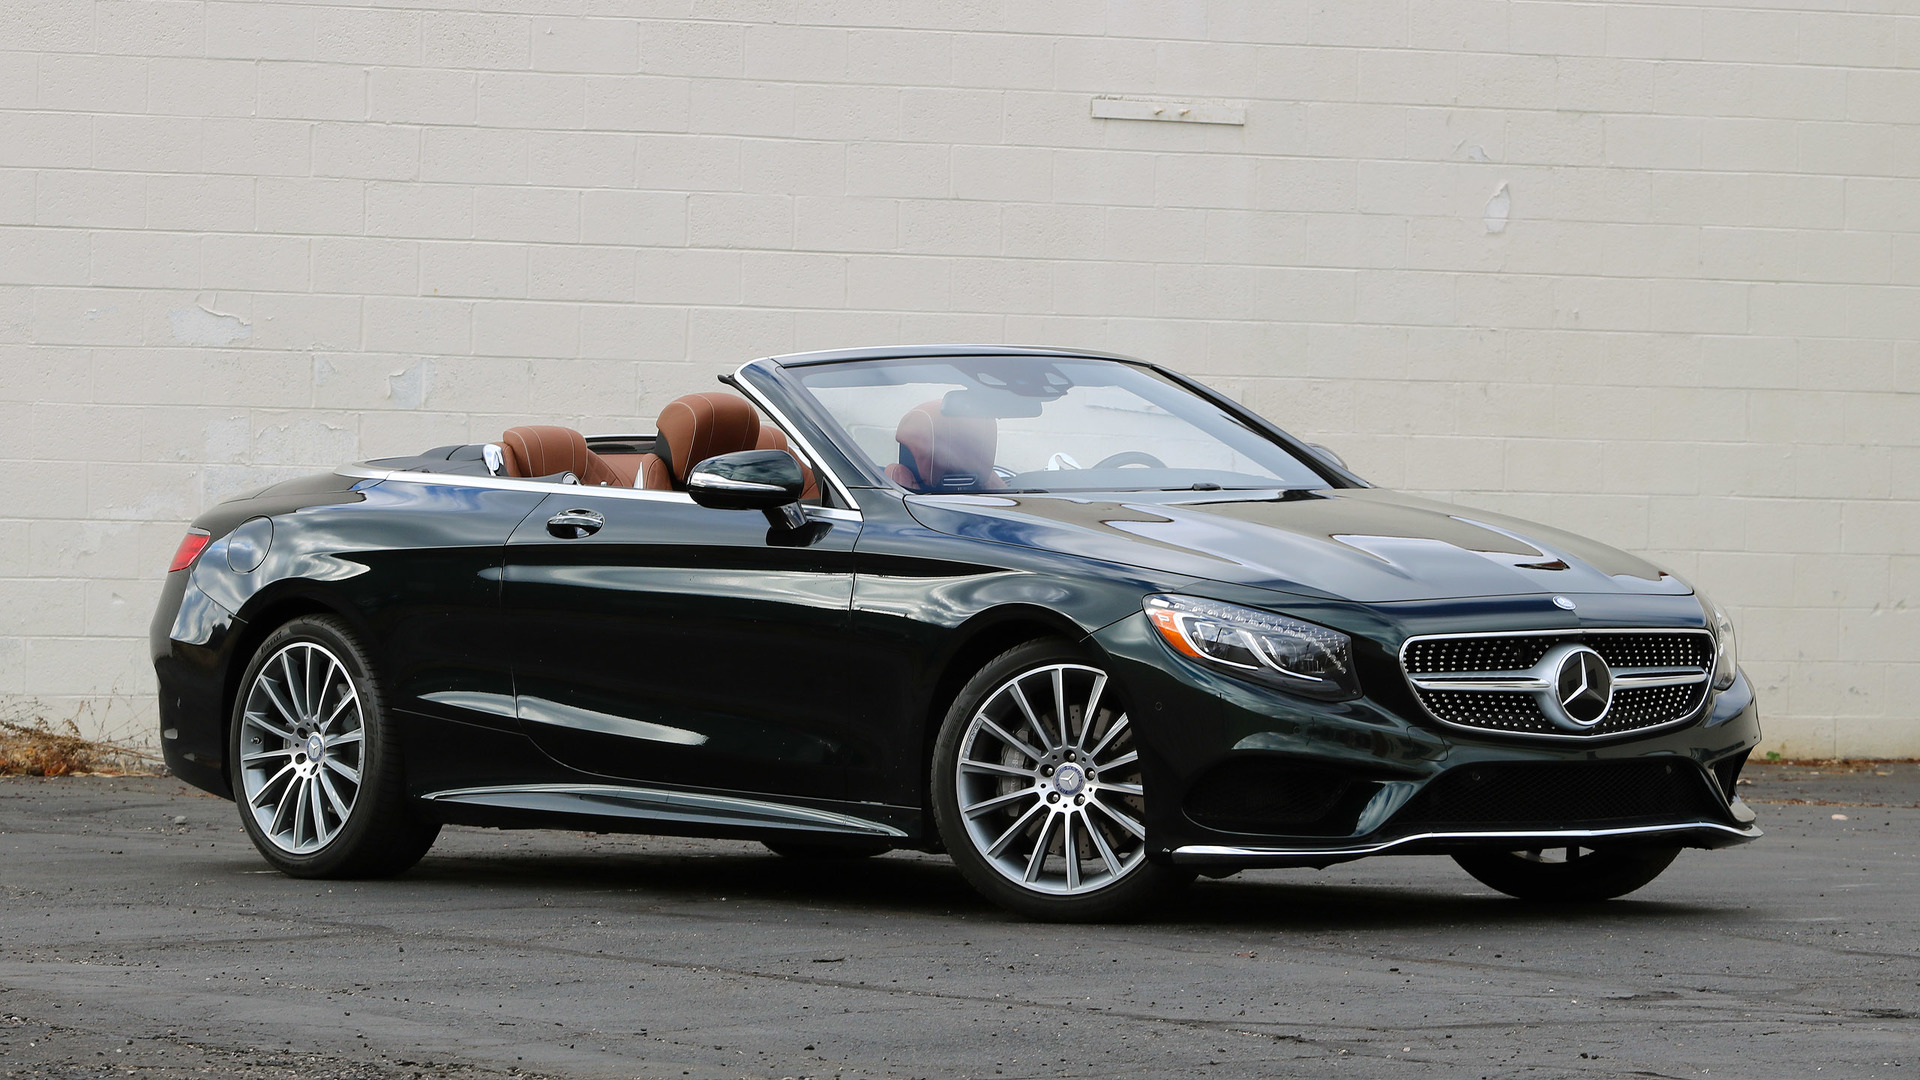 Swell 2017 Mercedes Benz S550 Cabriolet Review All The Luxury You Need Wiring Cloud Philuggs Outletorg